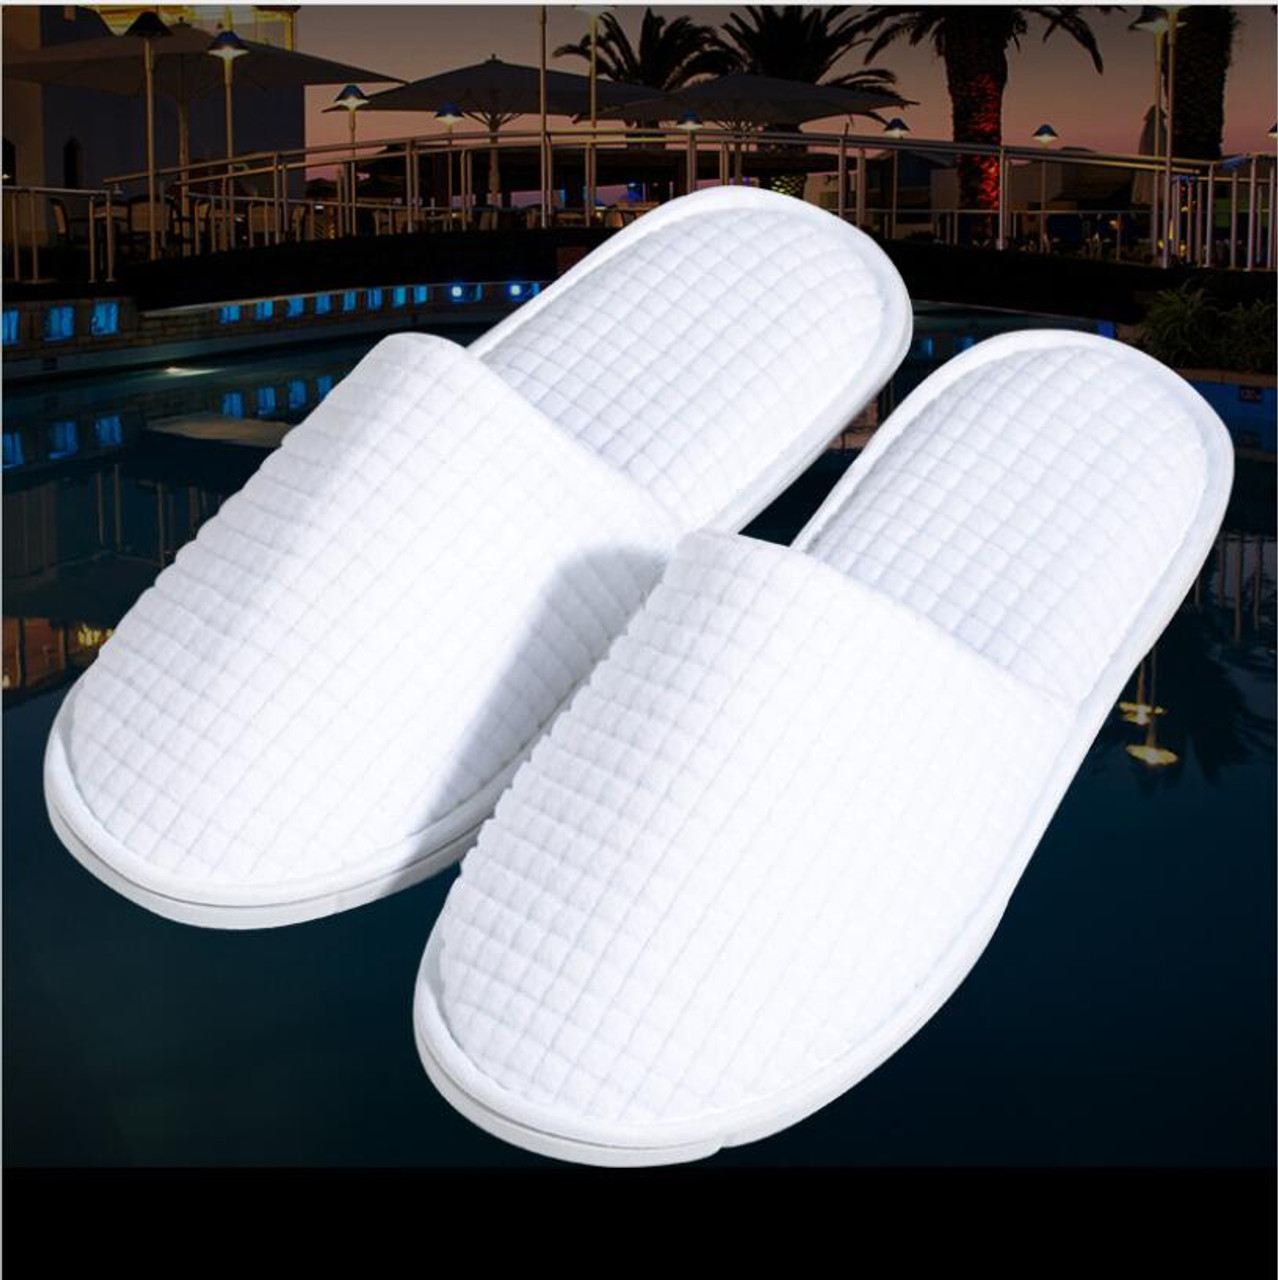 eec01941368b ... Top Quality White Fleece Close Toe Spa Slippers home guest slippers  Salon Spa Pedicure Flip Flop ...